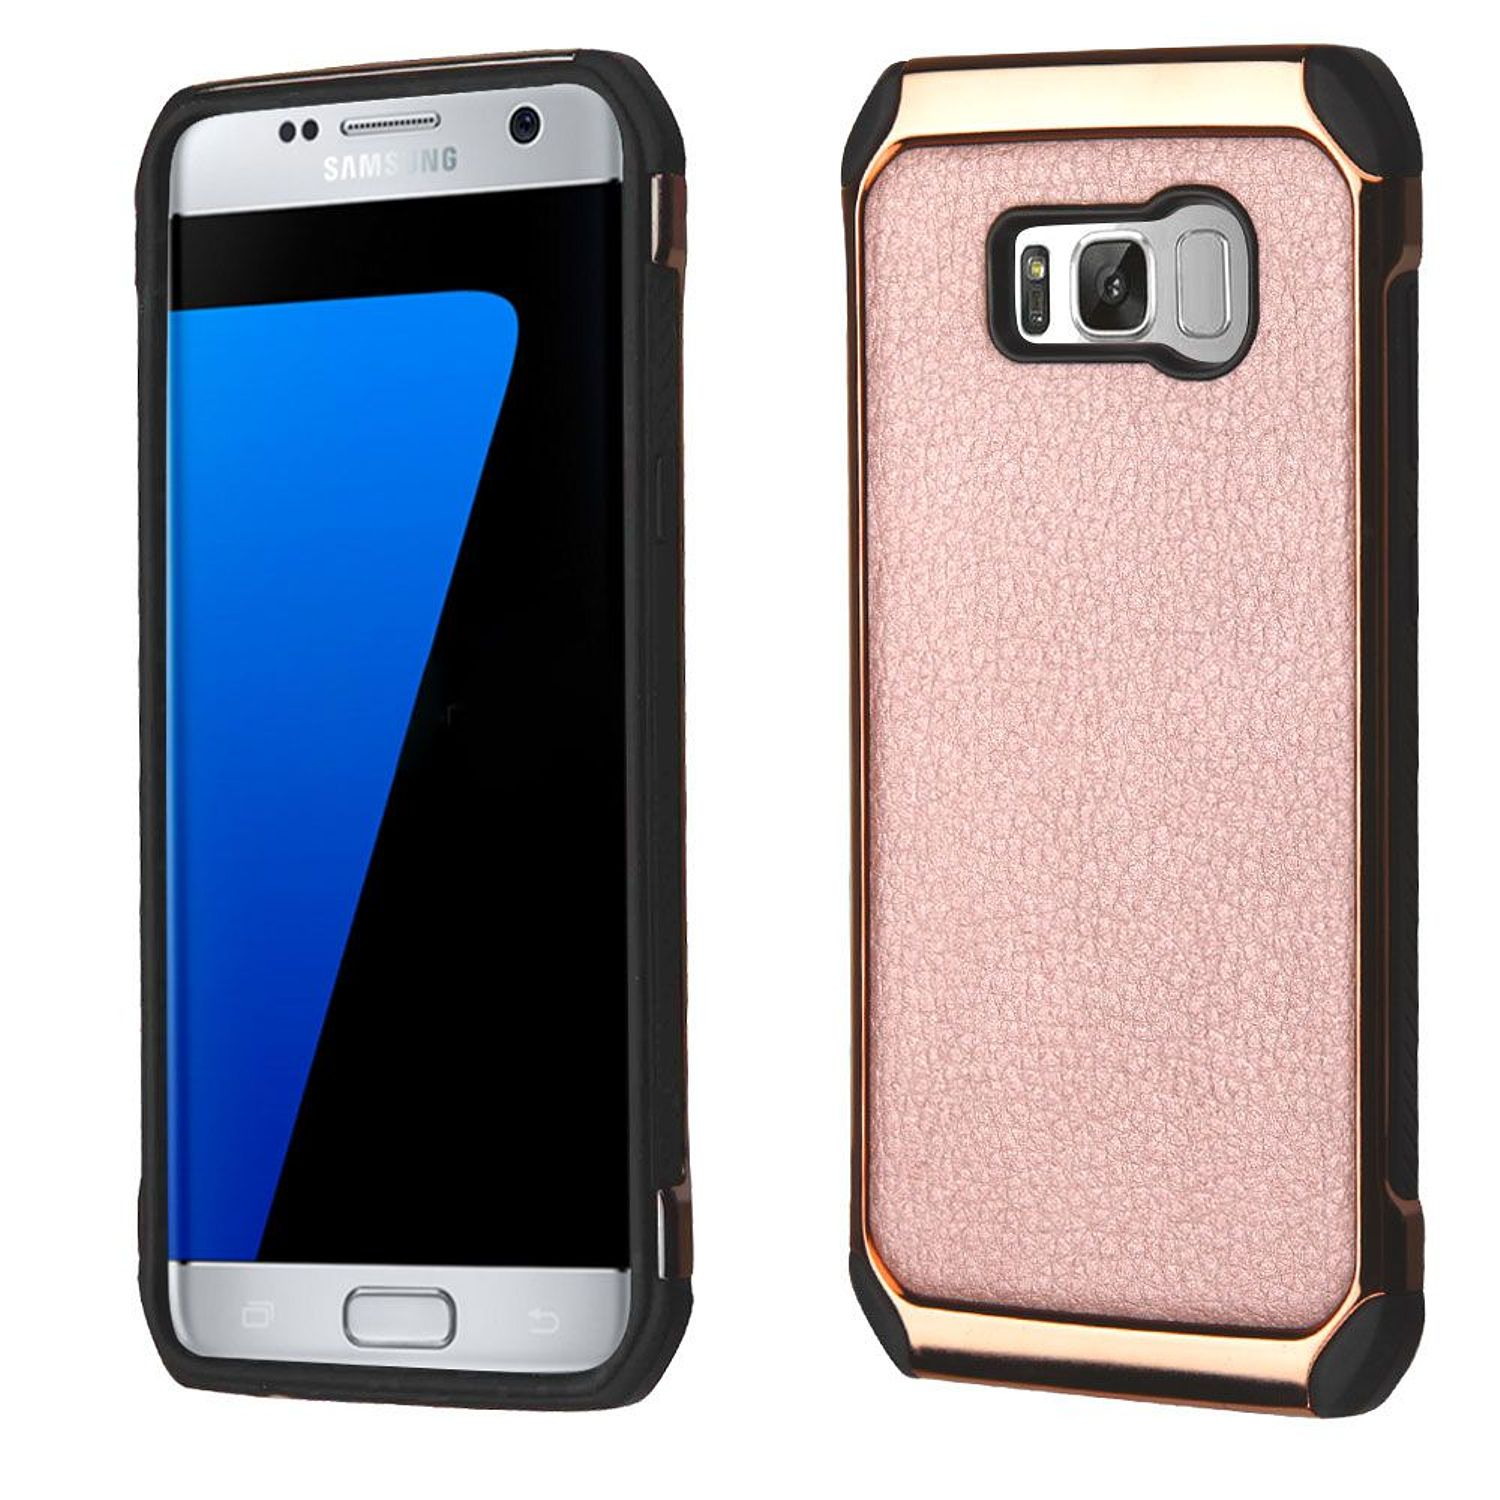 Samsung Galaxy S8 Plus Case, by Insten Dual Layer [Shock Absorbing] Hybrid Fabric Hard Plastic/Soft TPU Rubber Case Cover For Samsung Galaxy S8+, Rose Gold/Black